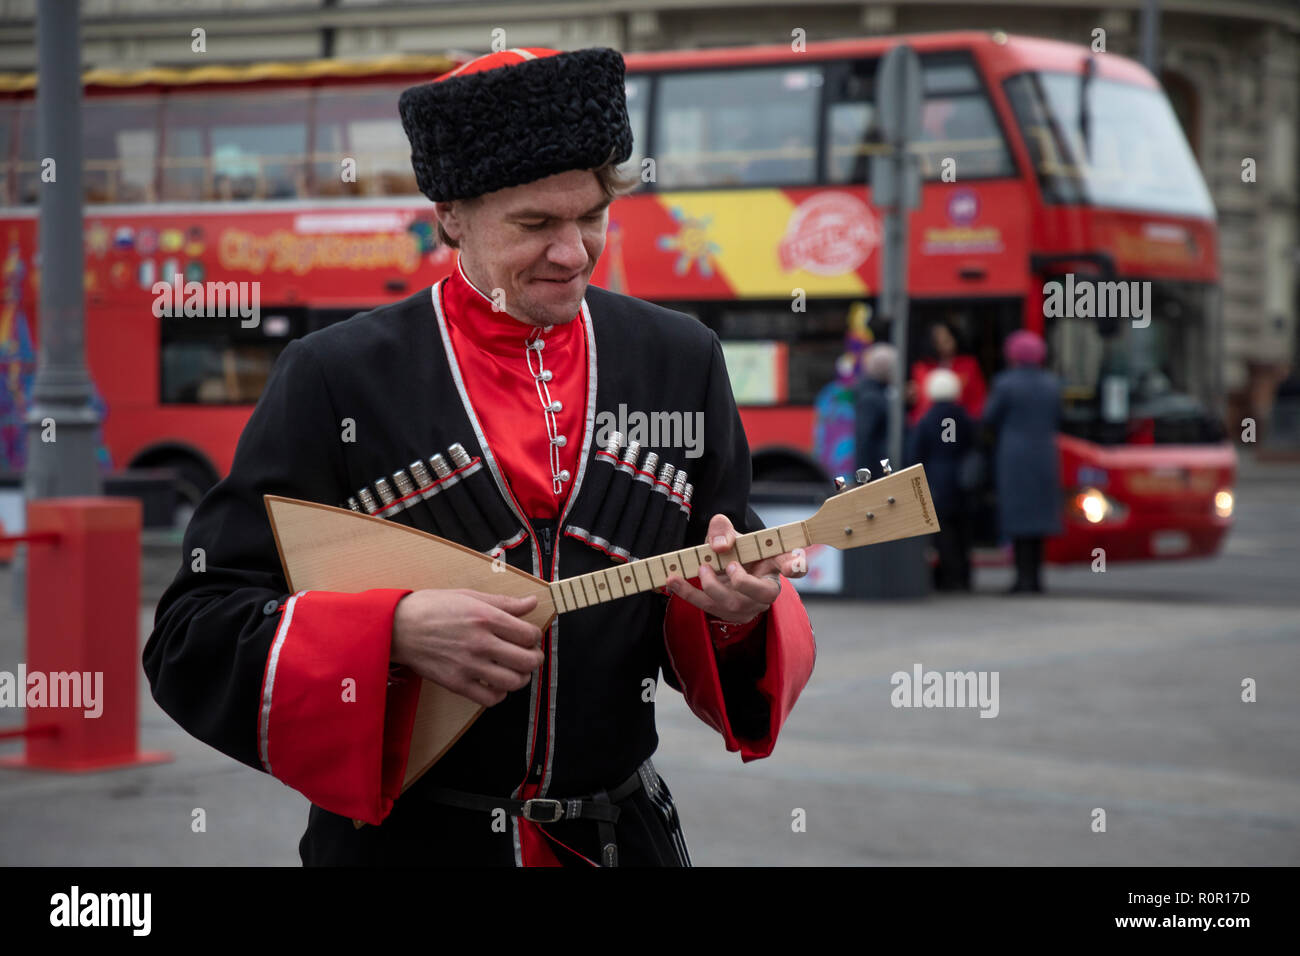 A man in a uniform of a Kuban Cossack plays a balalaika against a backdrop of the City Sightseeing tourist bus on Manezhnaya Square in Moscow, Russia - Stock Image